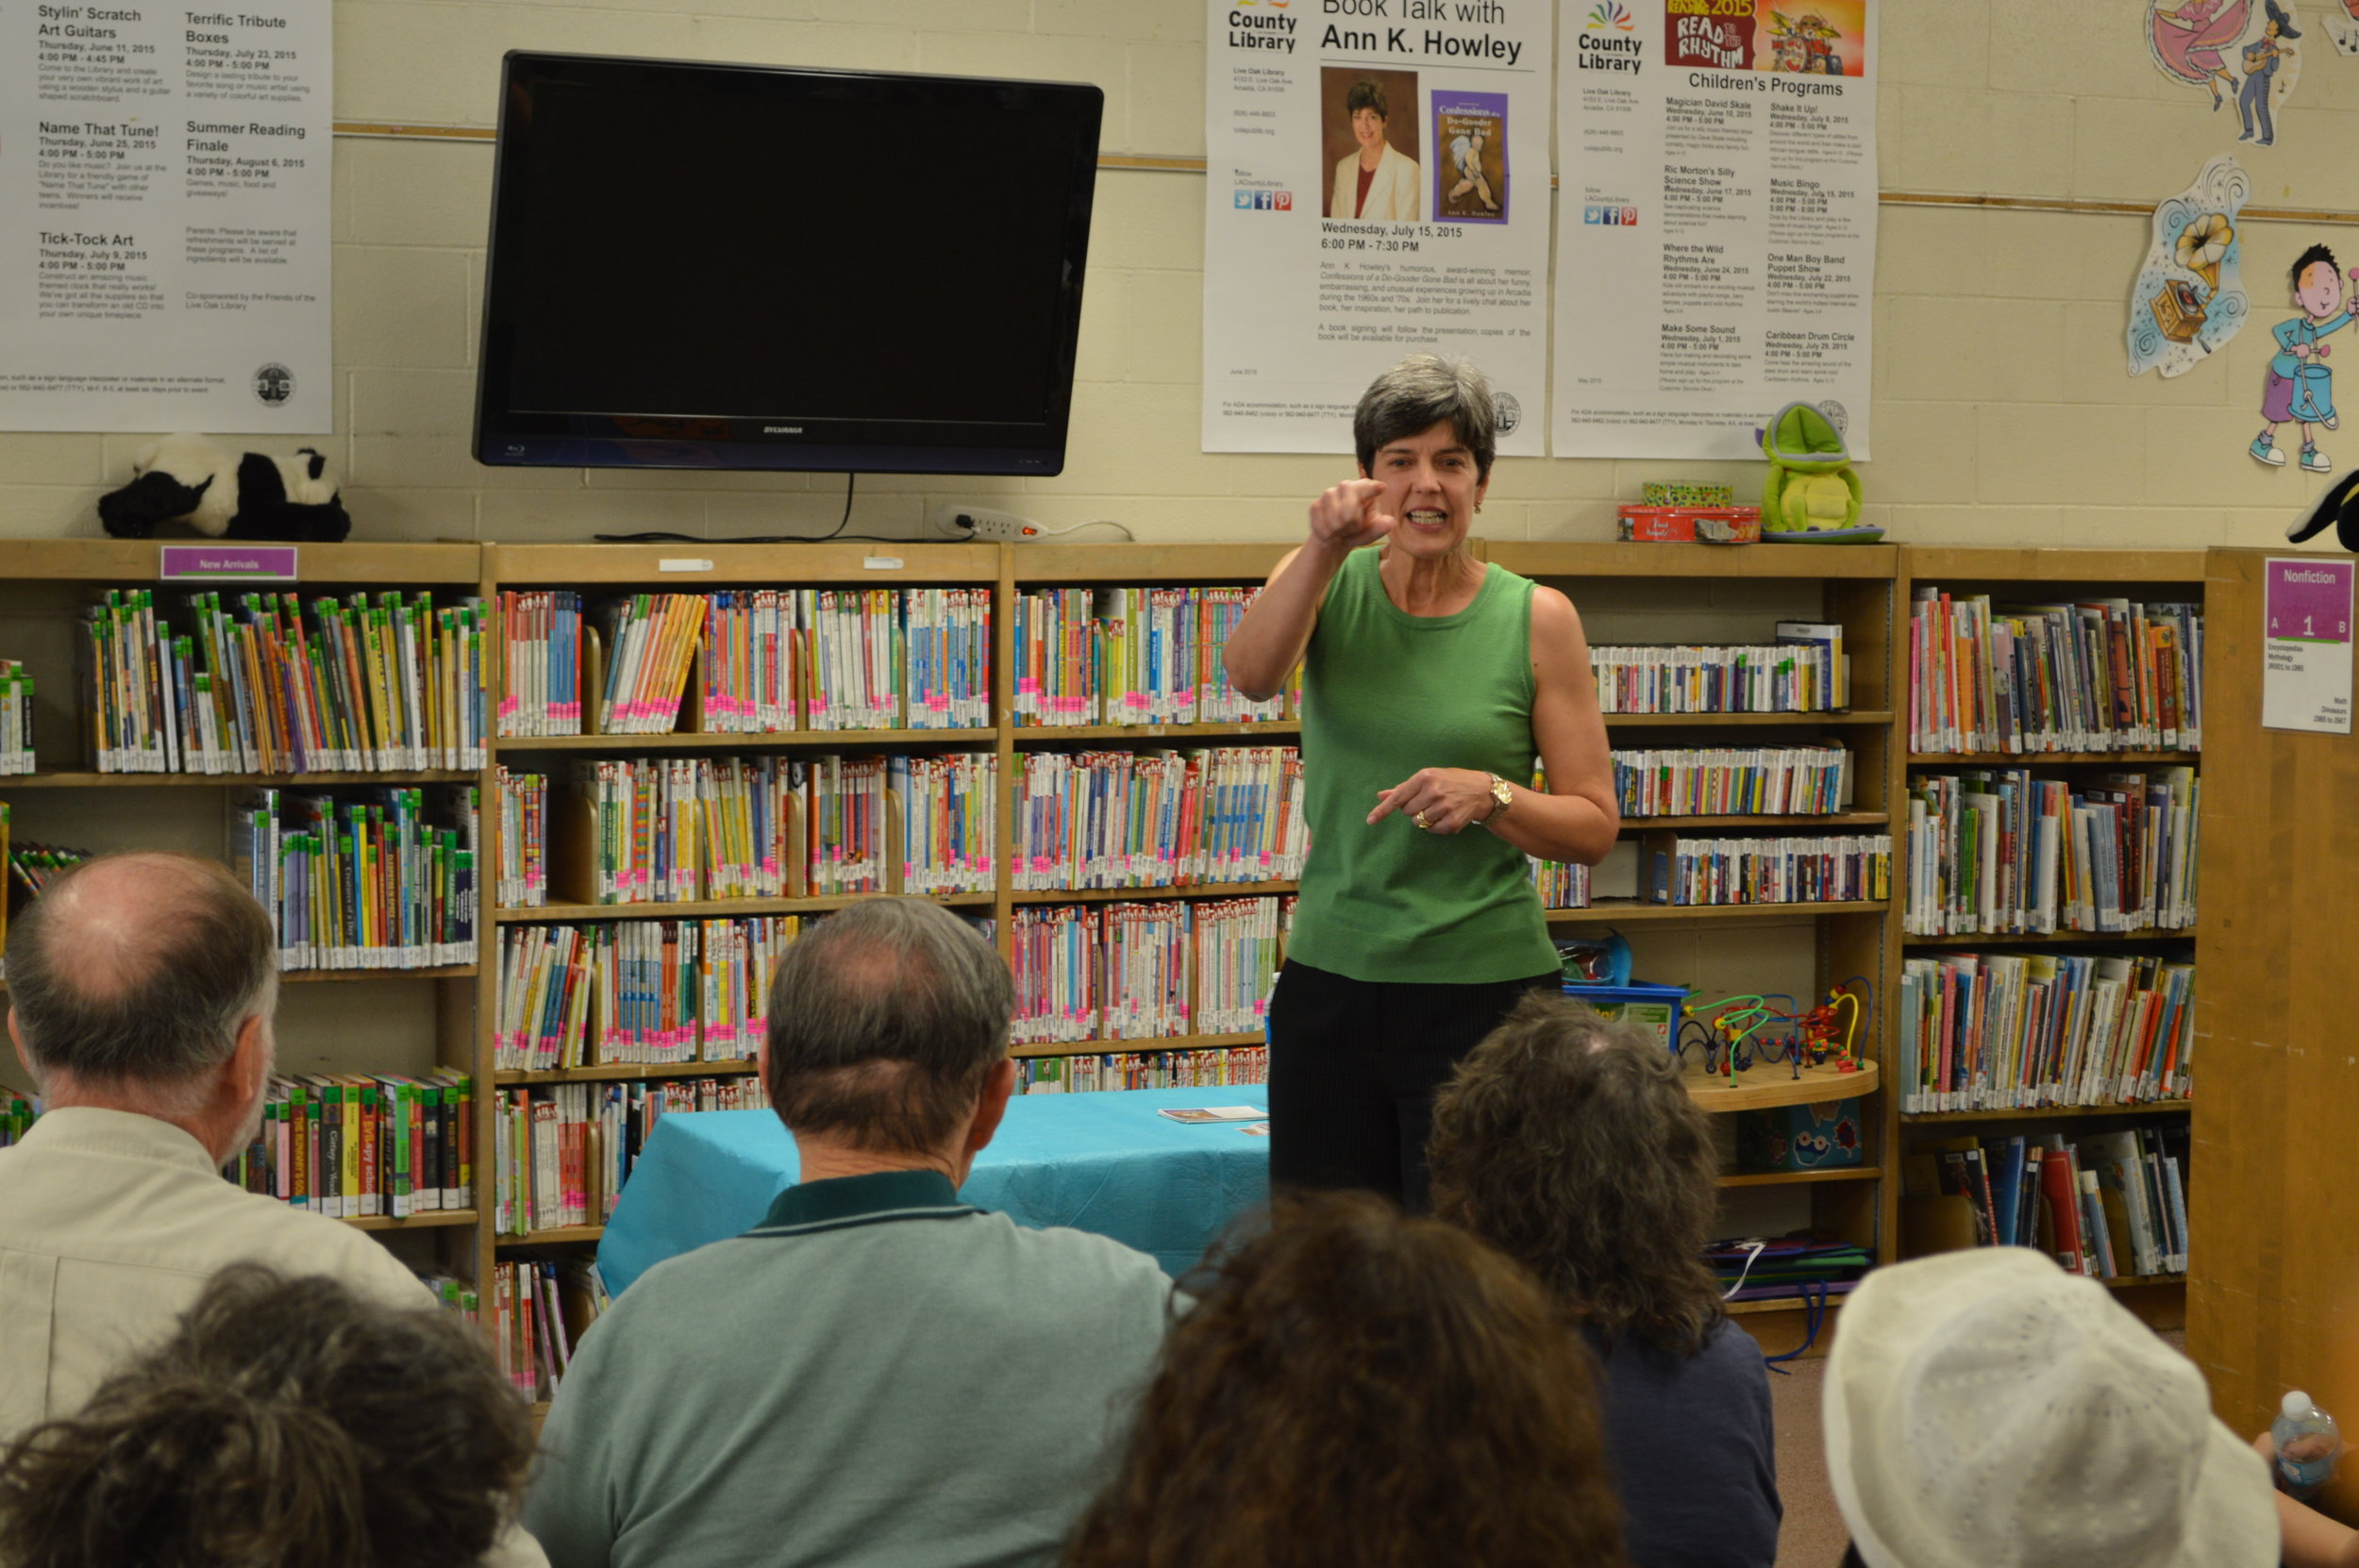 Ann Howley speaking at a library event in Los Angeles.